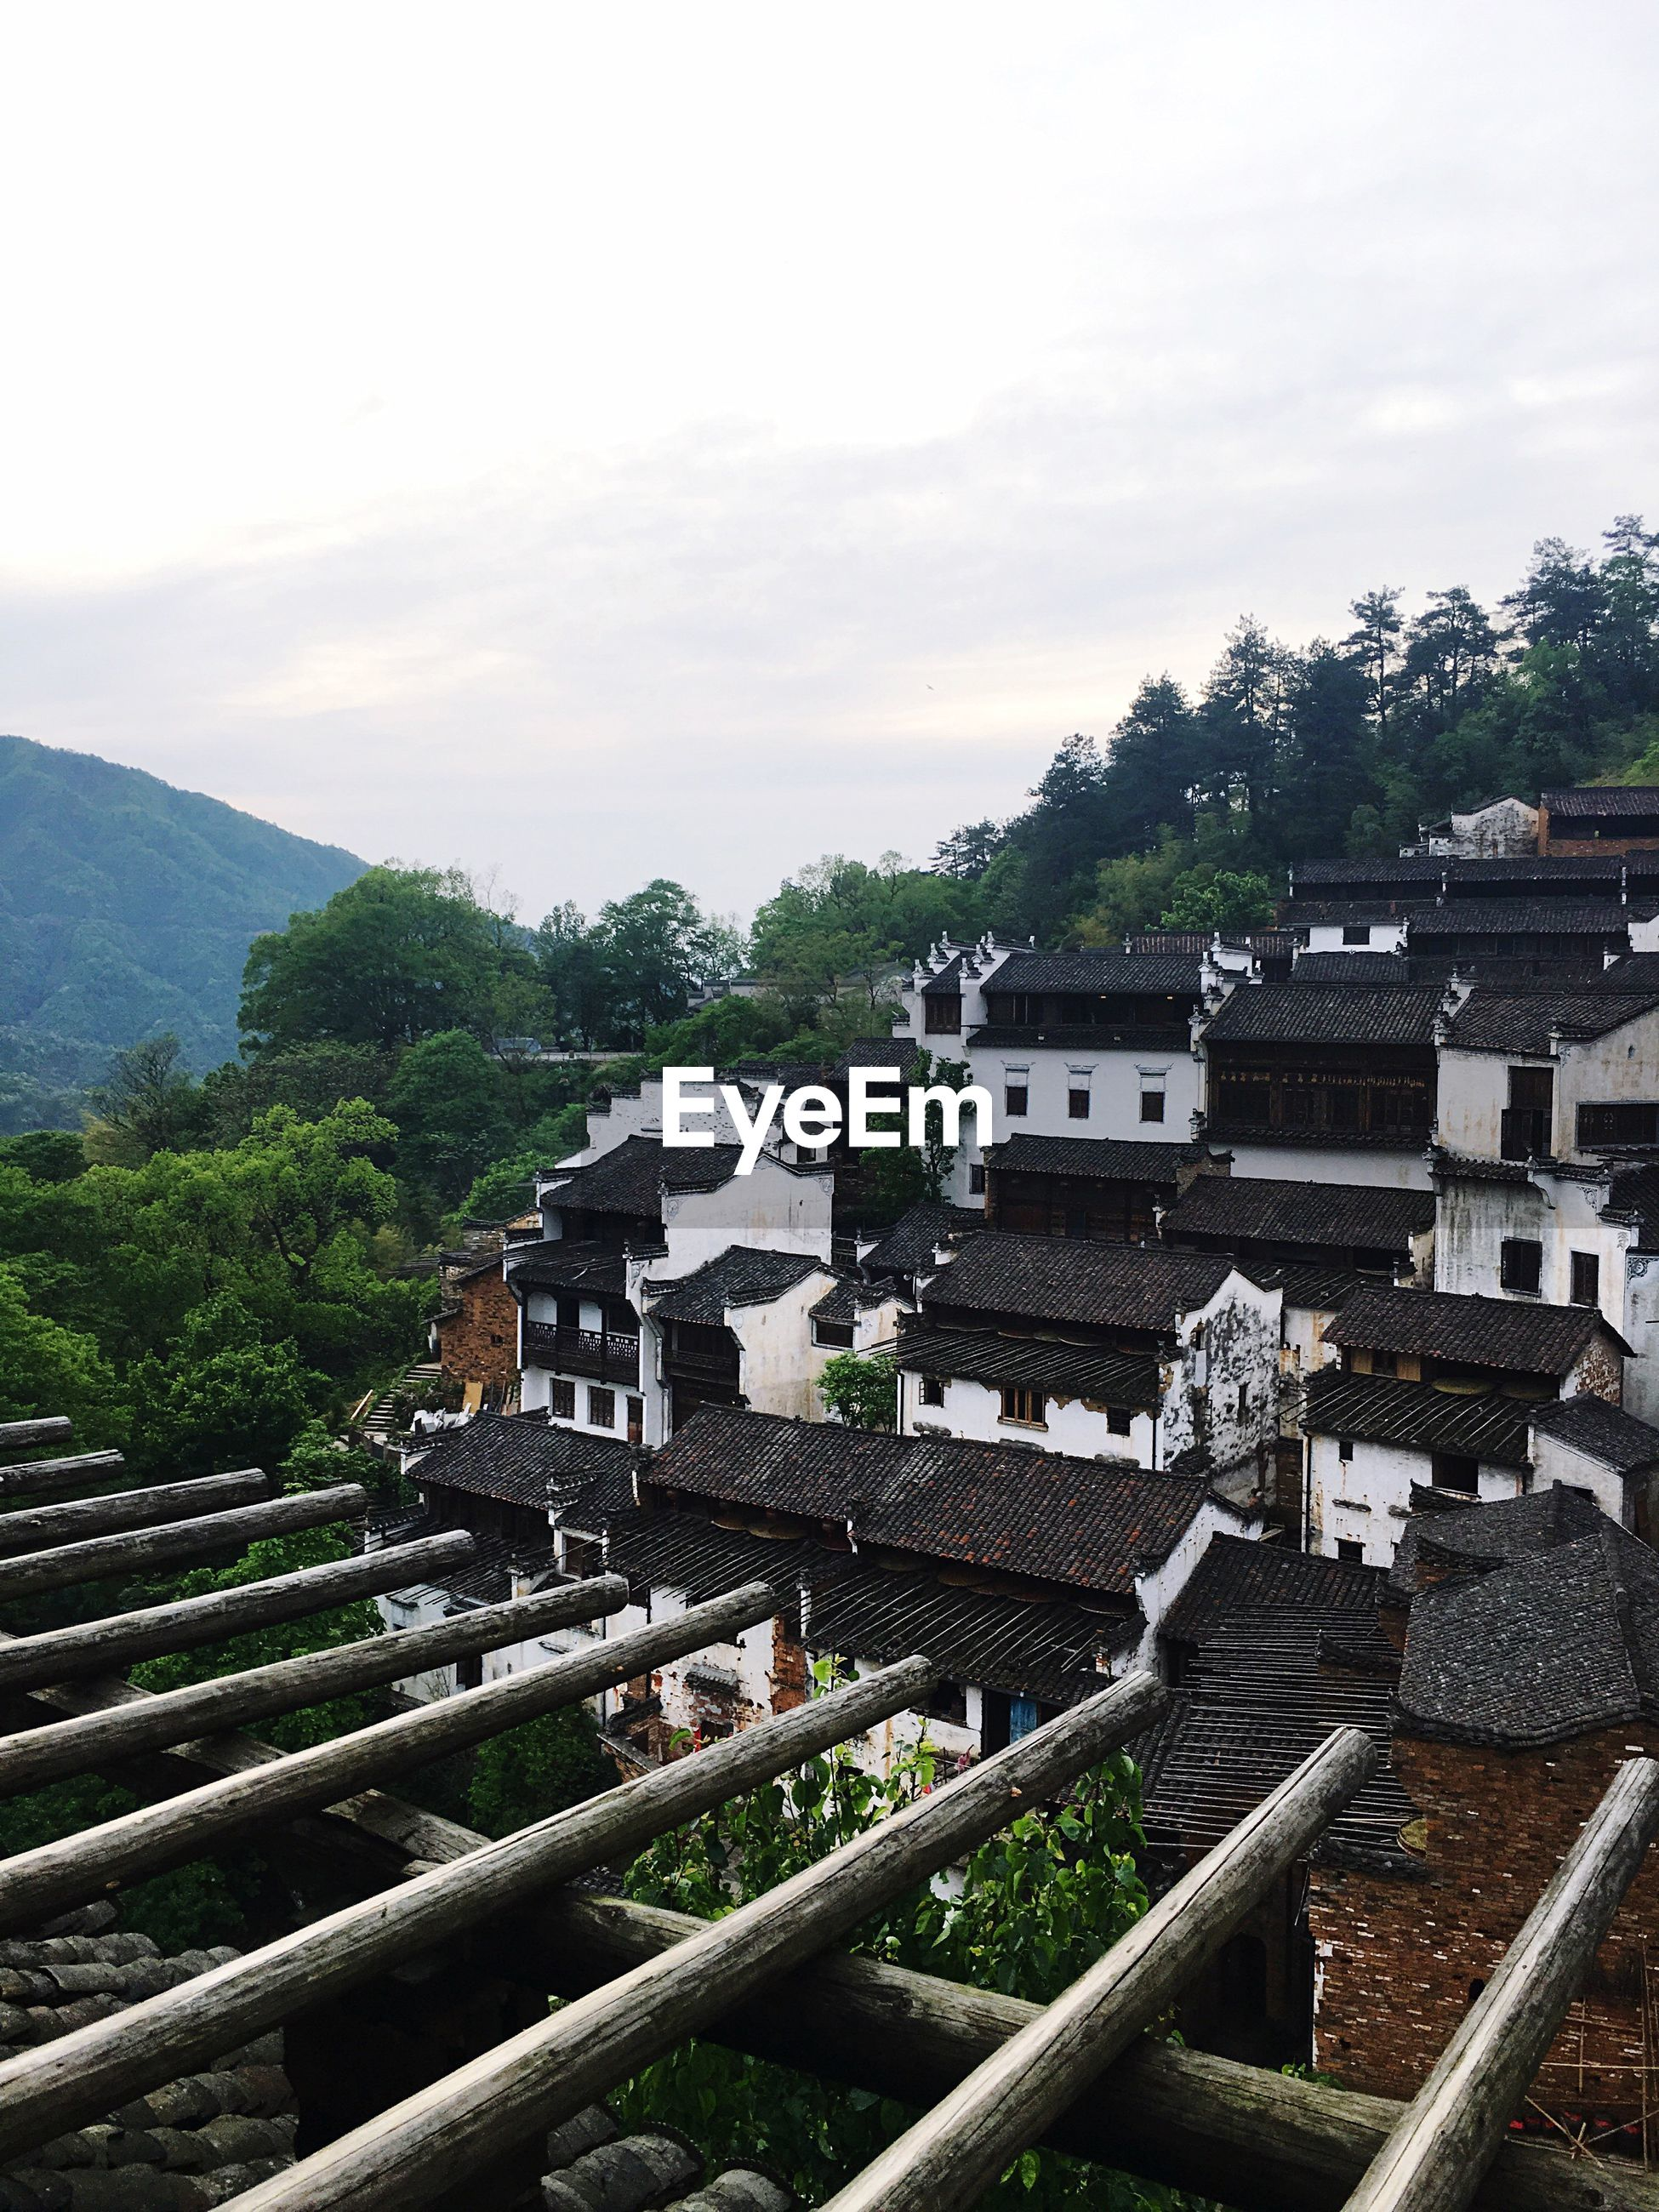 building exterior, architecture, built structure, high angle view, tree, sky, house, roof, residential structure, residential building, mountain, cloud - sky, residential district, railroad track, town, day, city, townscape, cityscape, outdoors